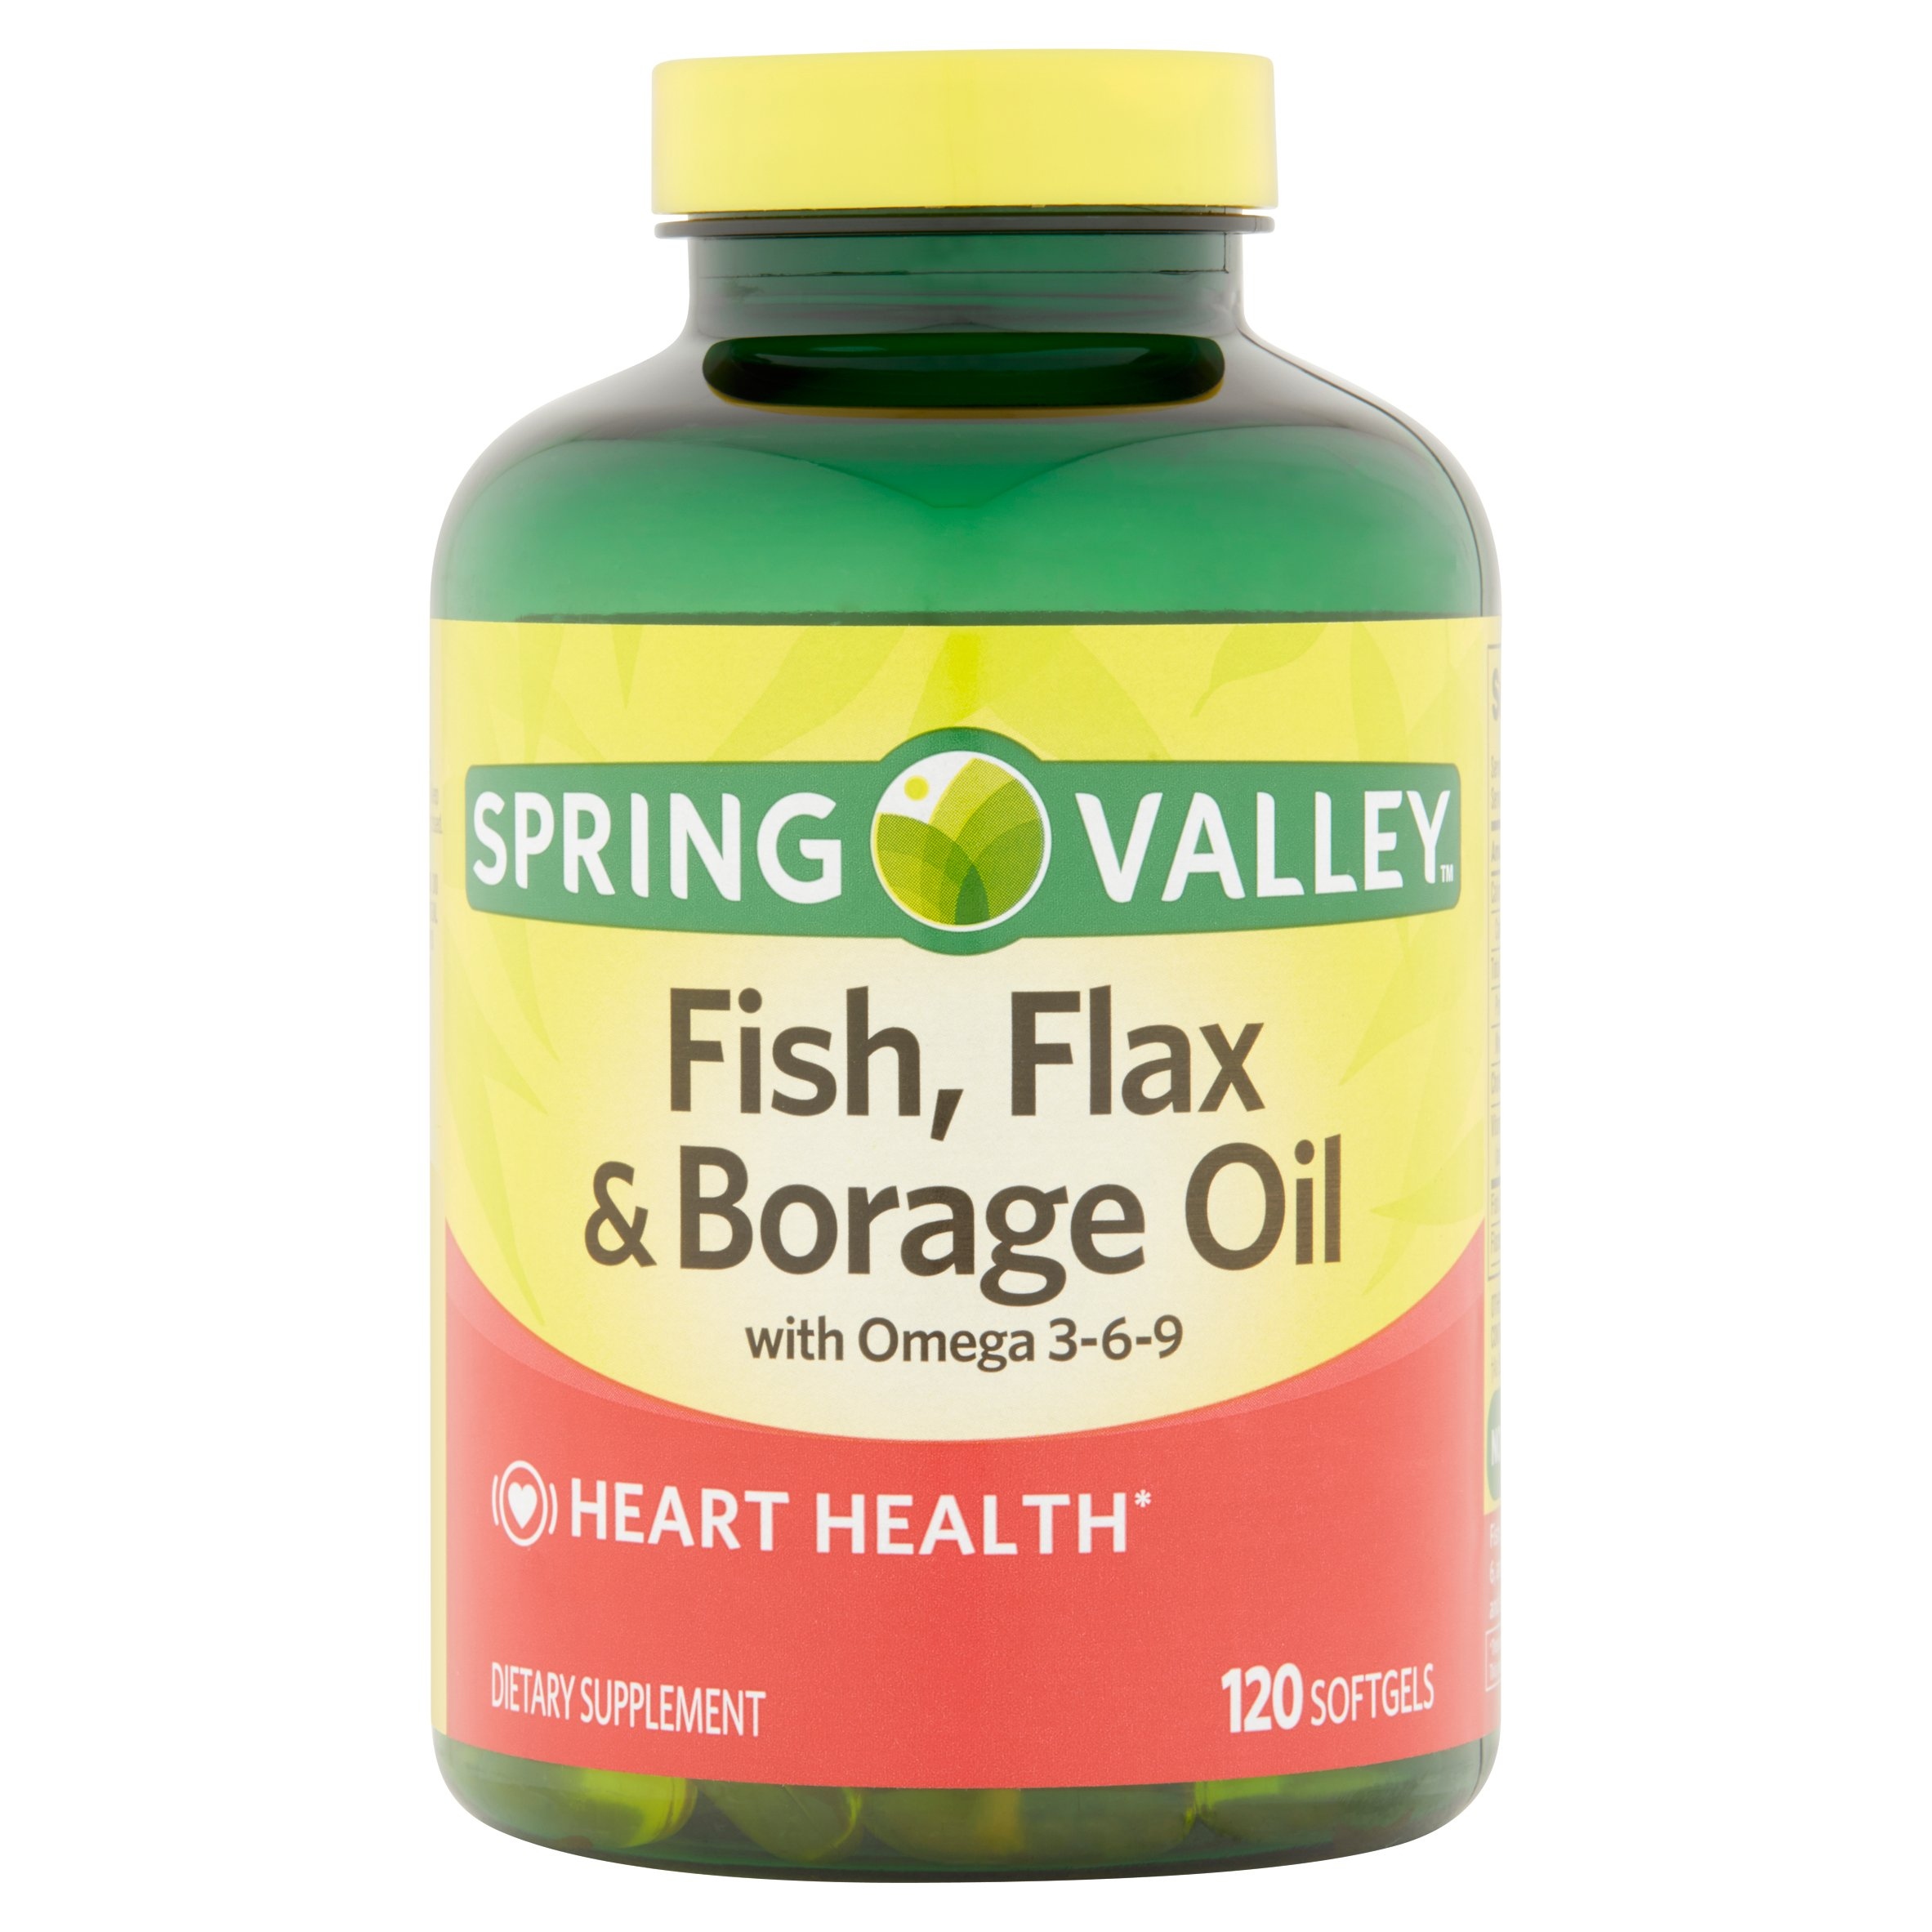 spring valley fish, flax & borage oil dietary supplement softgels, Skeleton